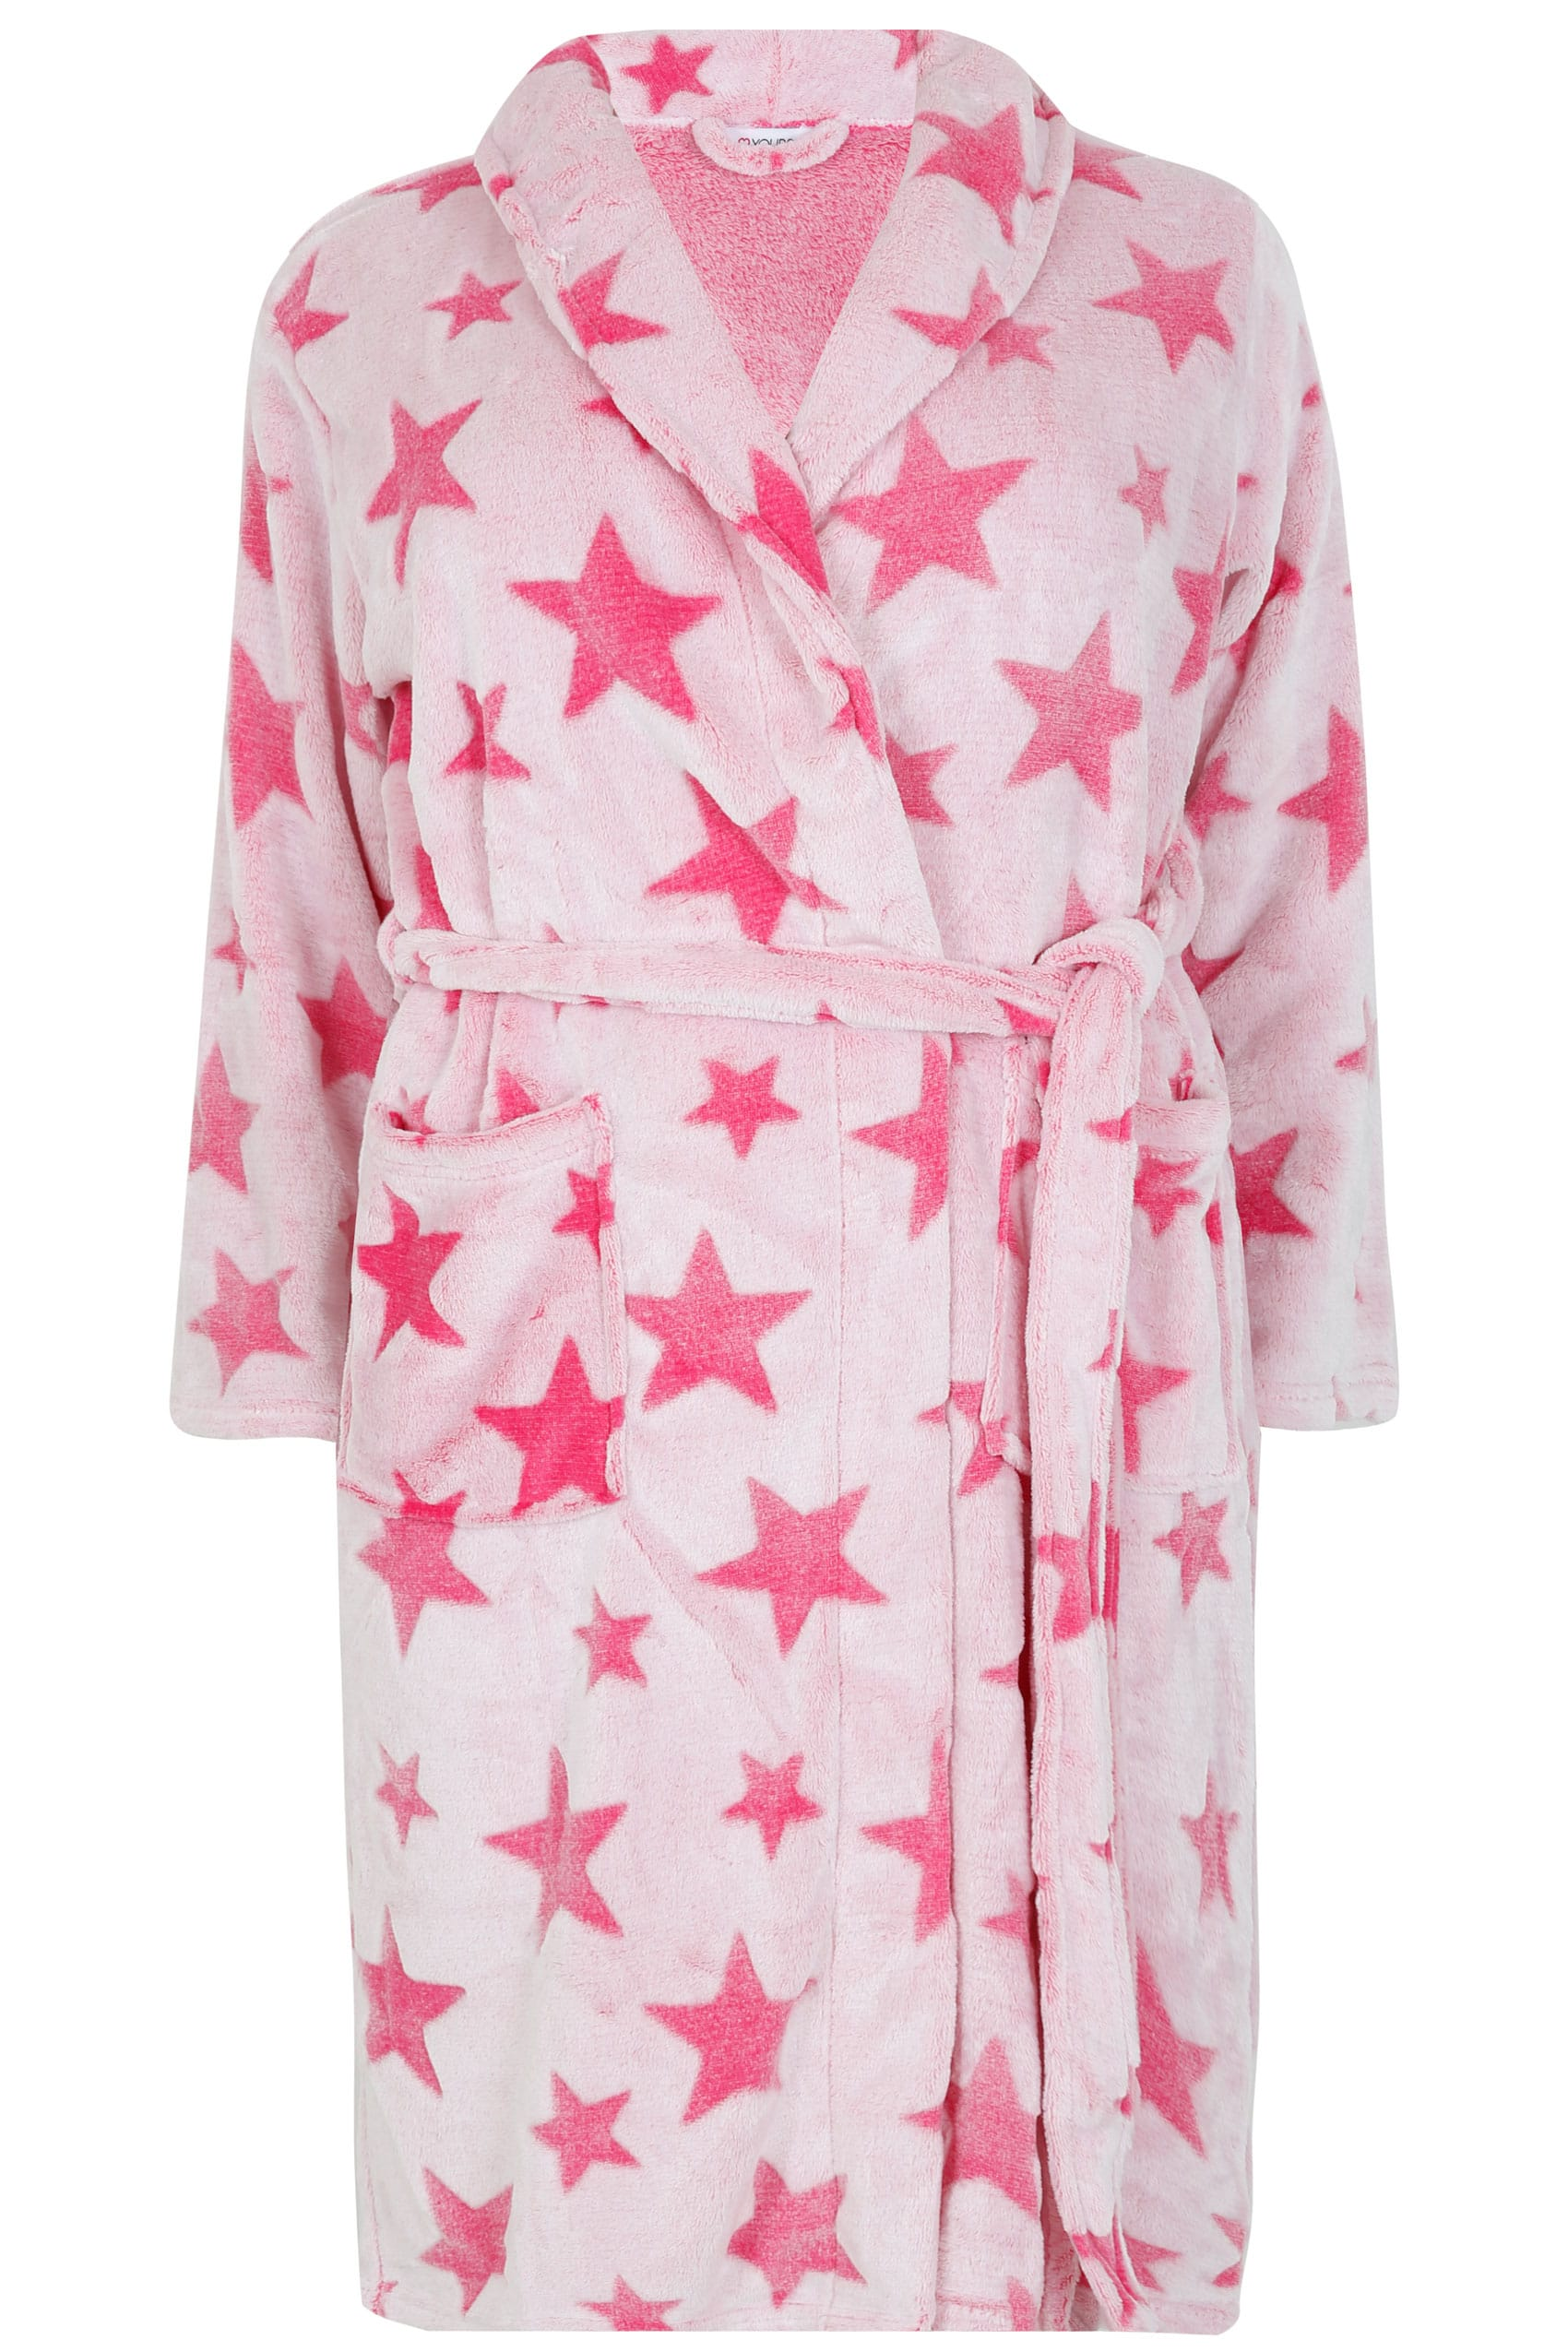 Pink Super Soft Luxurious Star Fleece Dressing Gown, Plus size 16 to 36